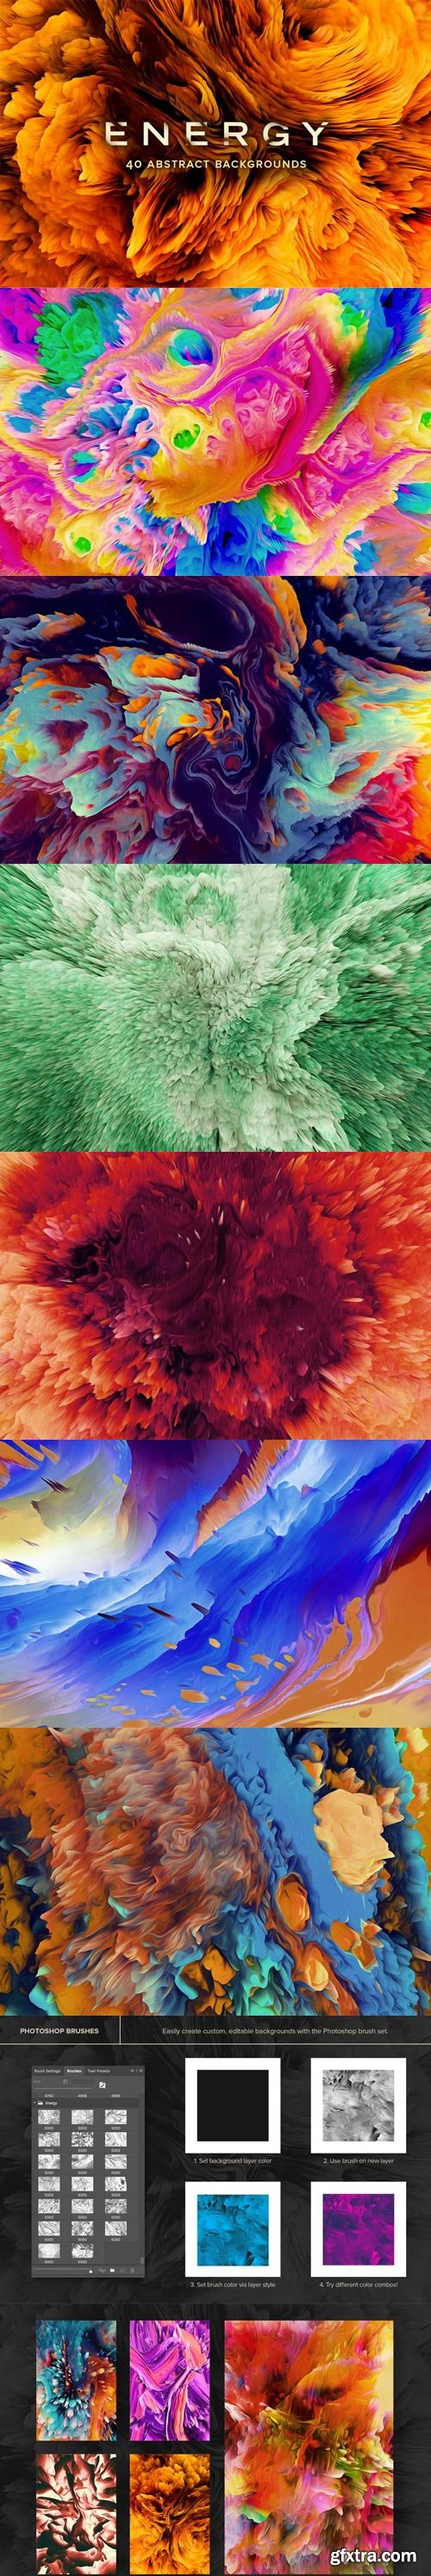 ChromaSupply - Energy: 40 Abstract Backgrounds